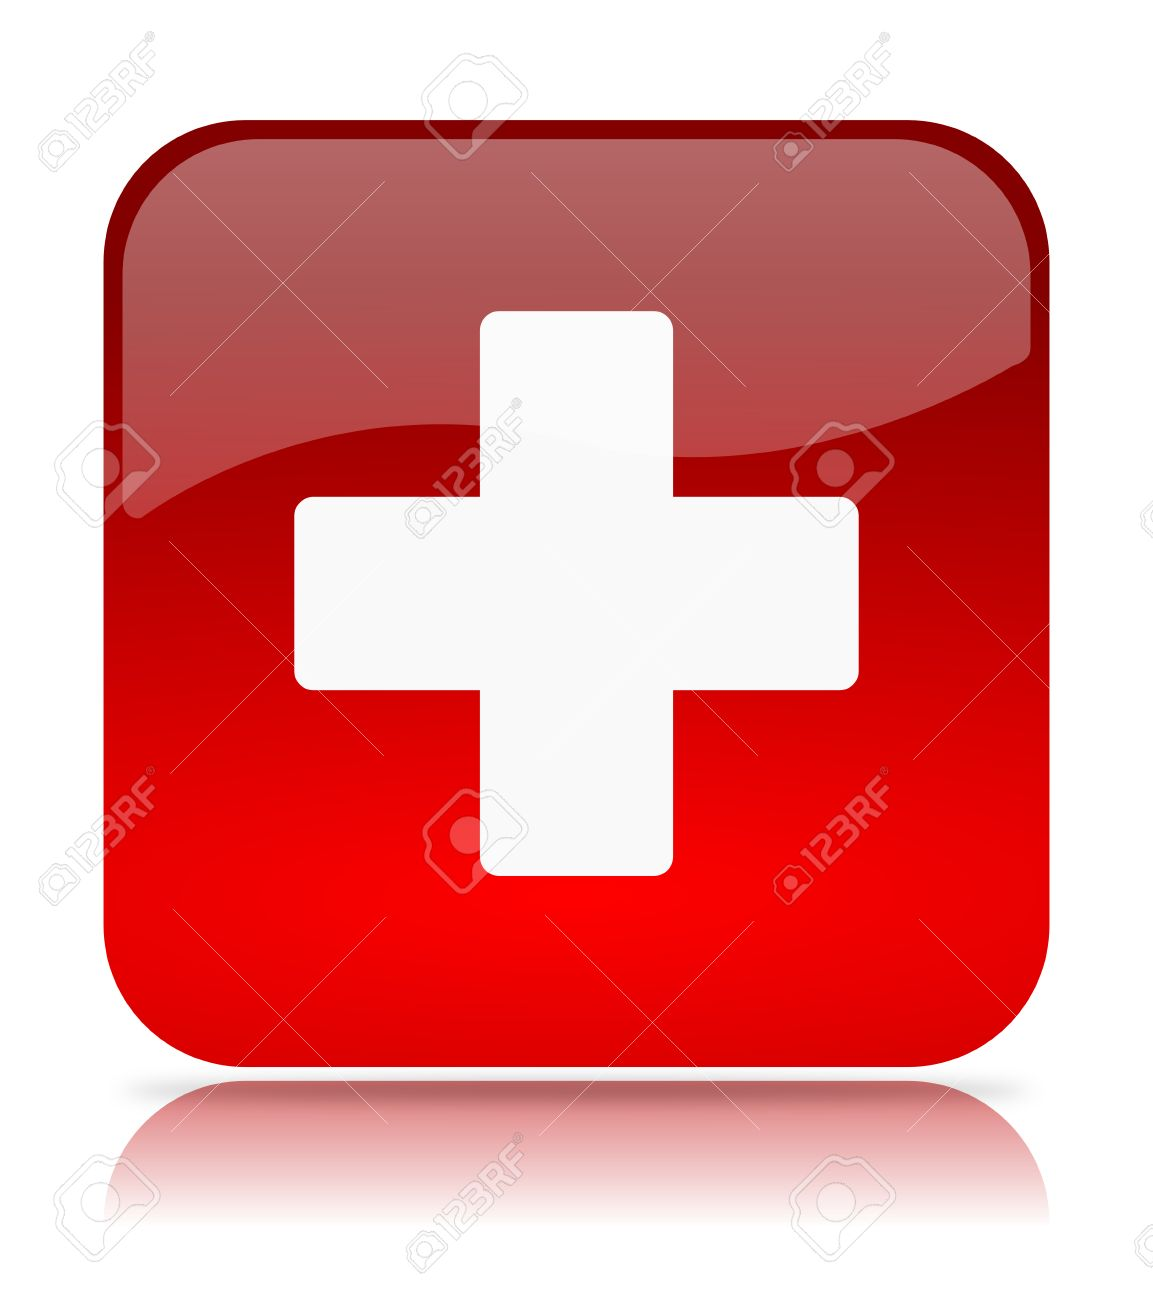 Red cross app icon illustration on white background stock photo red cross app icon illustration on white background stock illustration 35820928 biocorpaavc Images